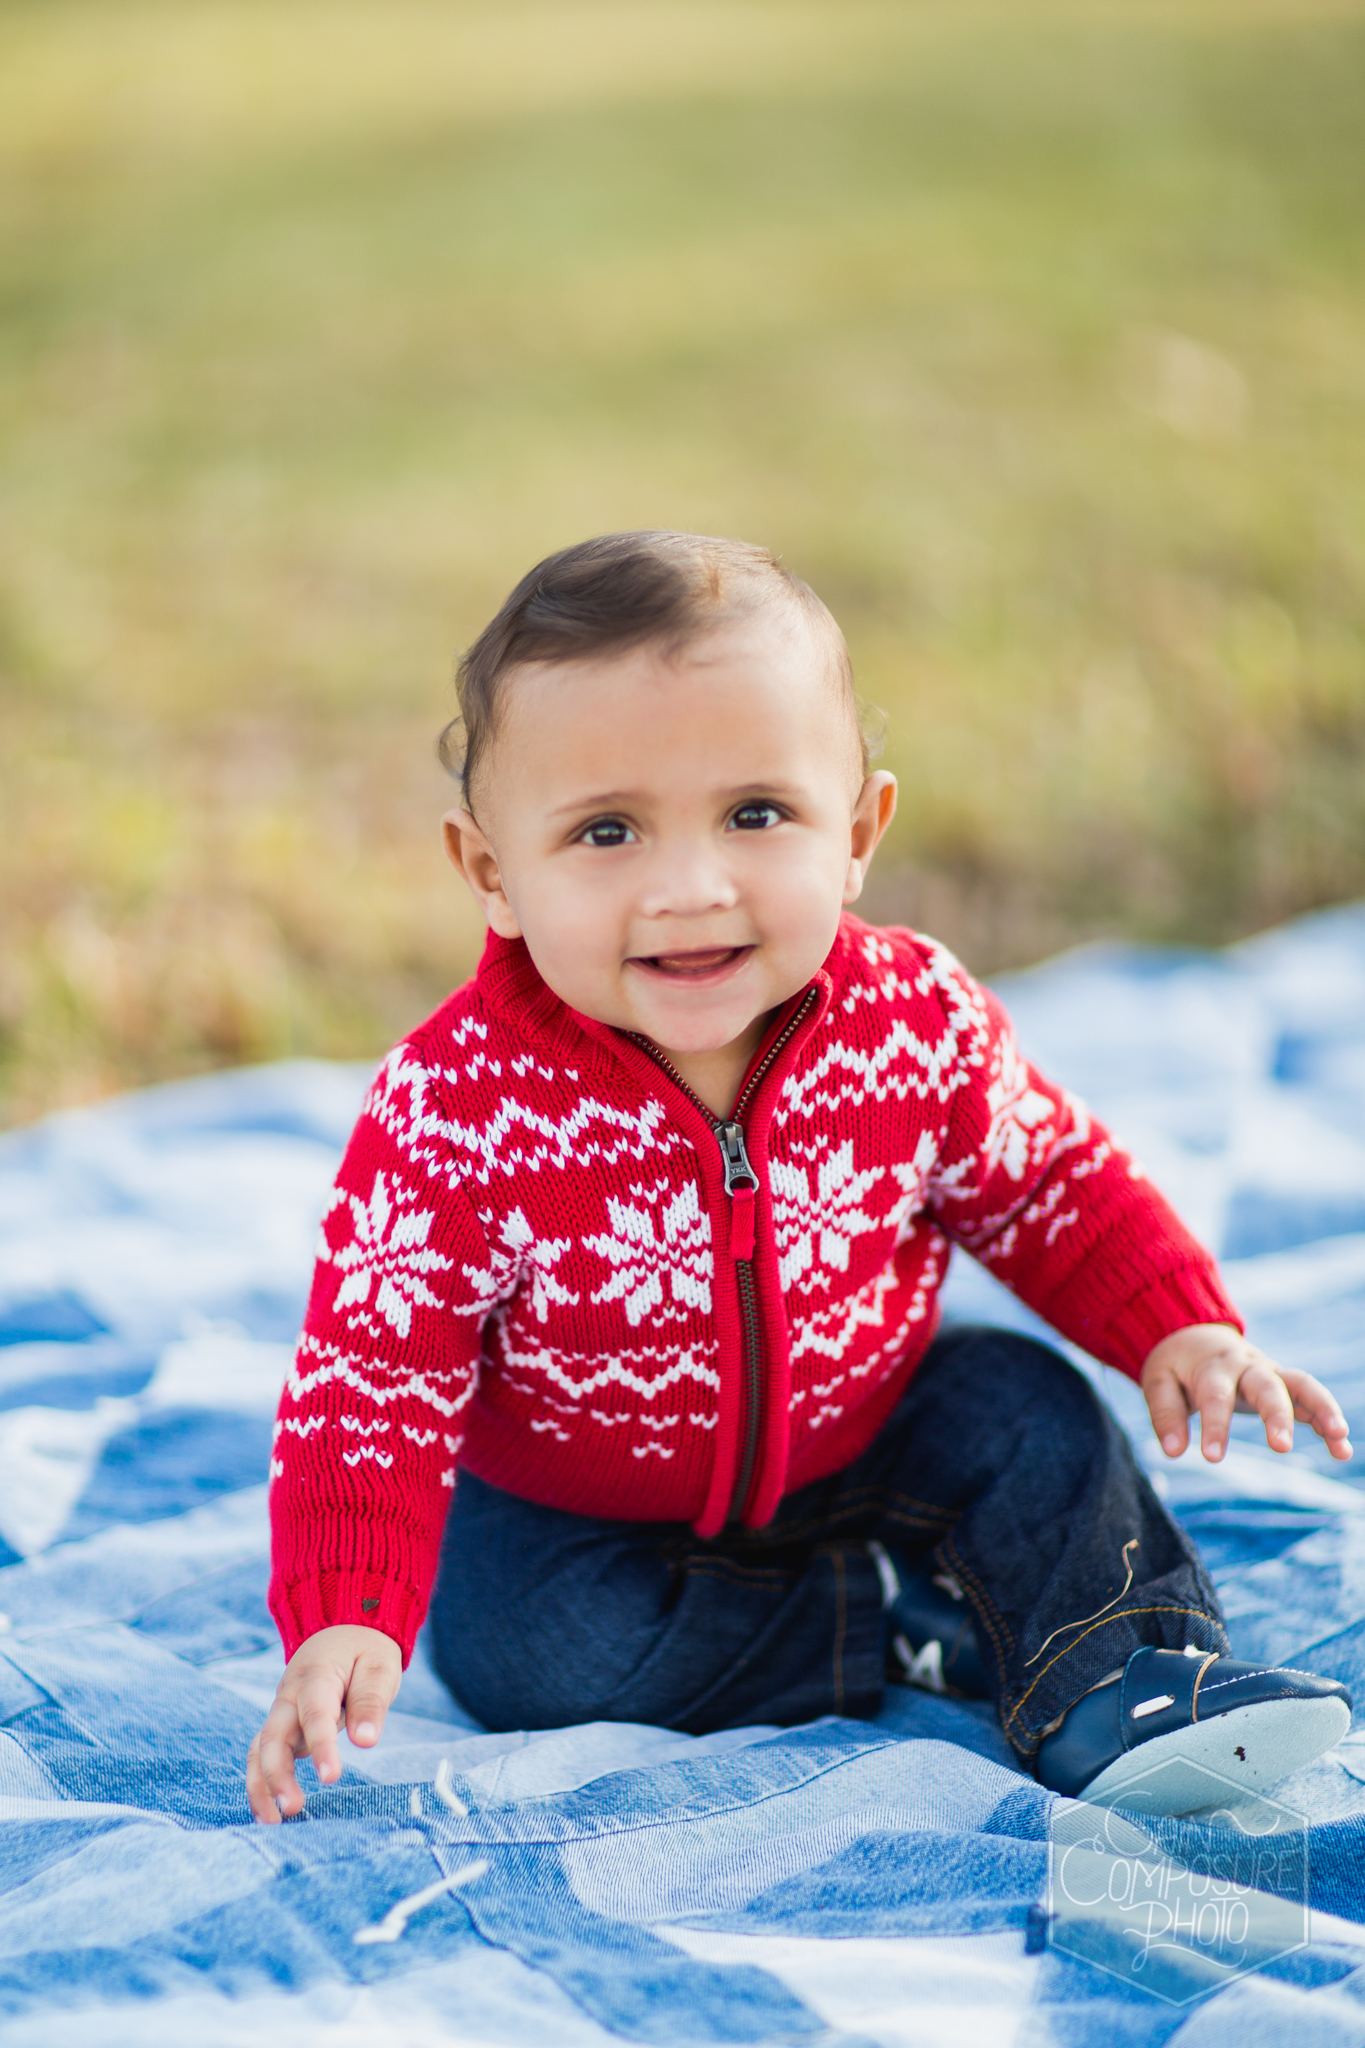 Outdoor portrait of young boy at springwood park